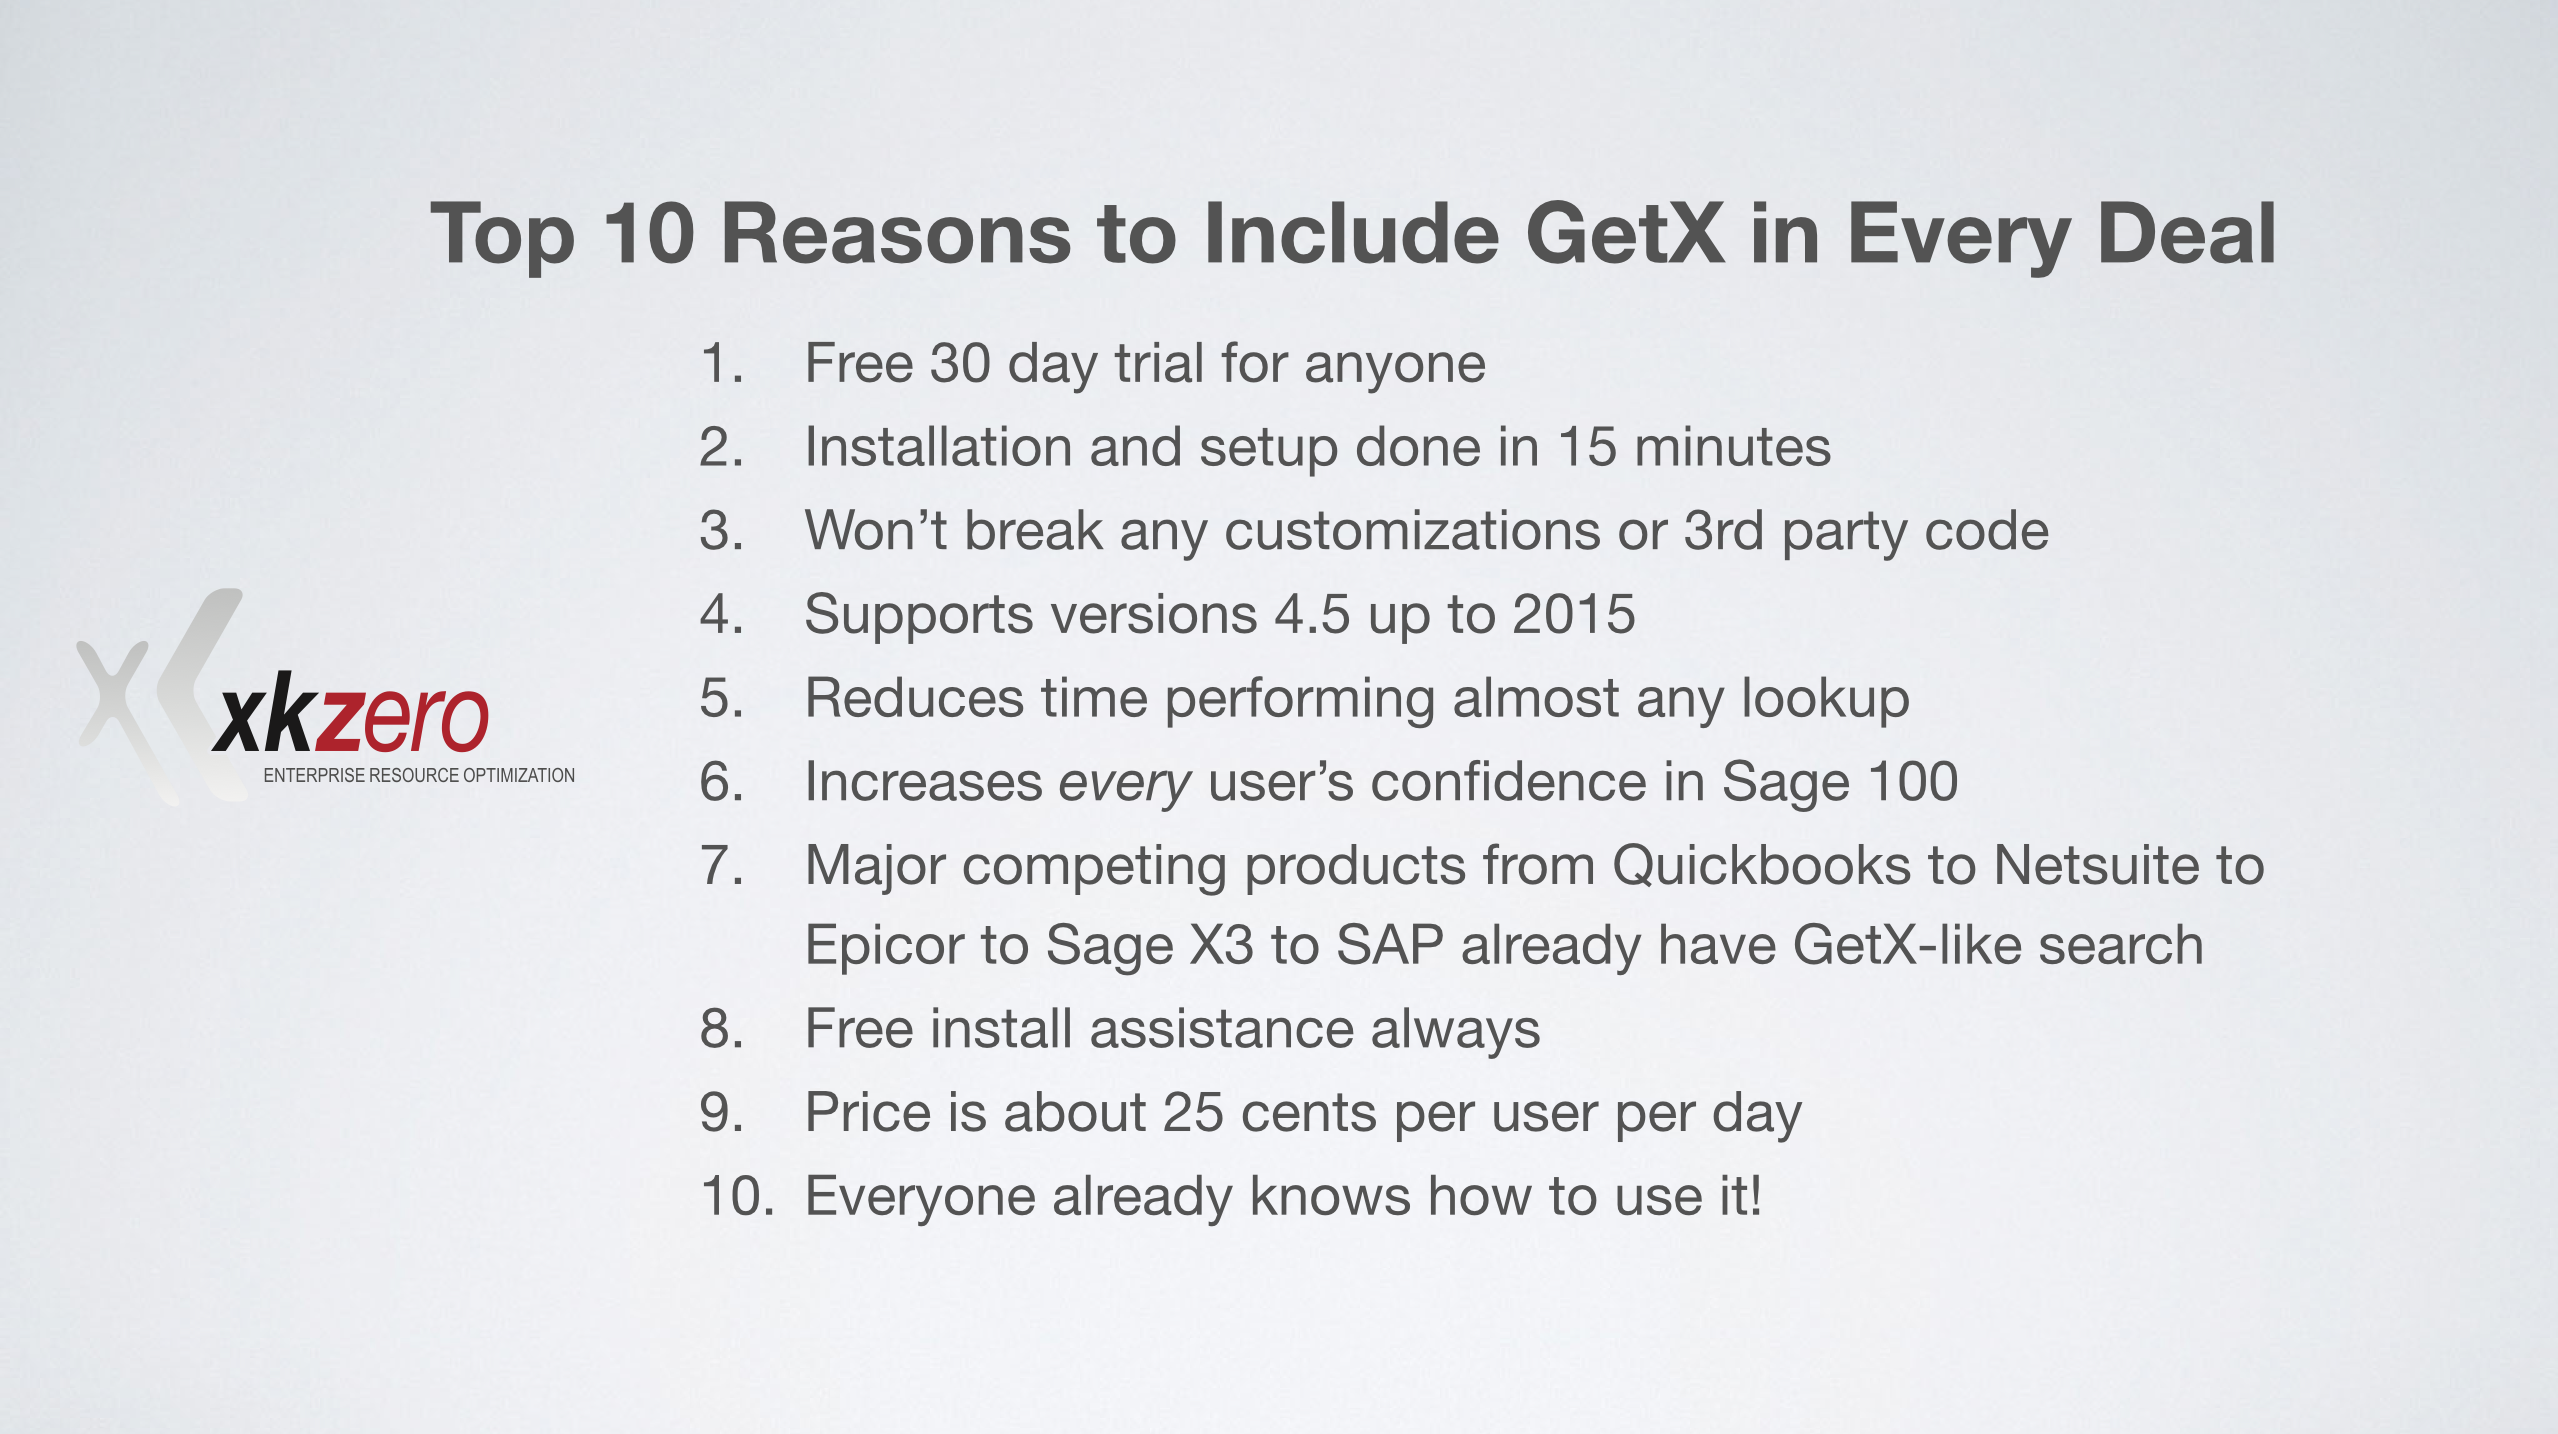 Top 10 Reasons to use GetX